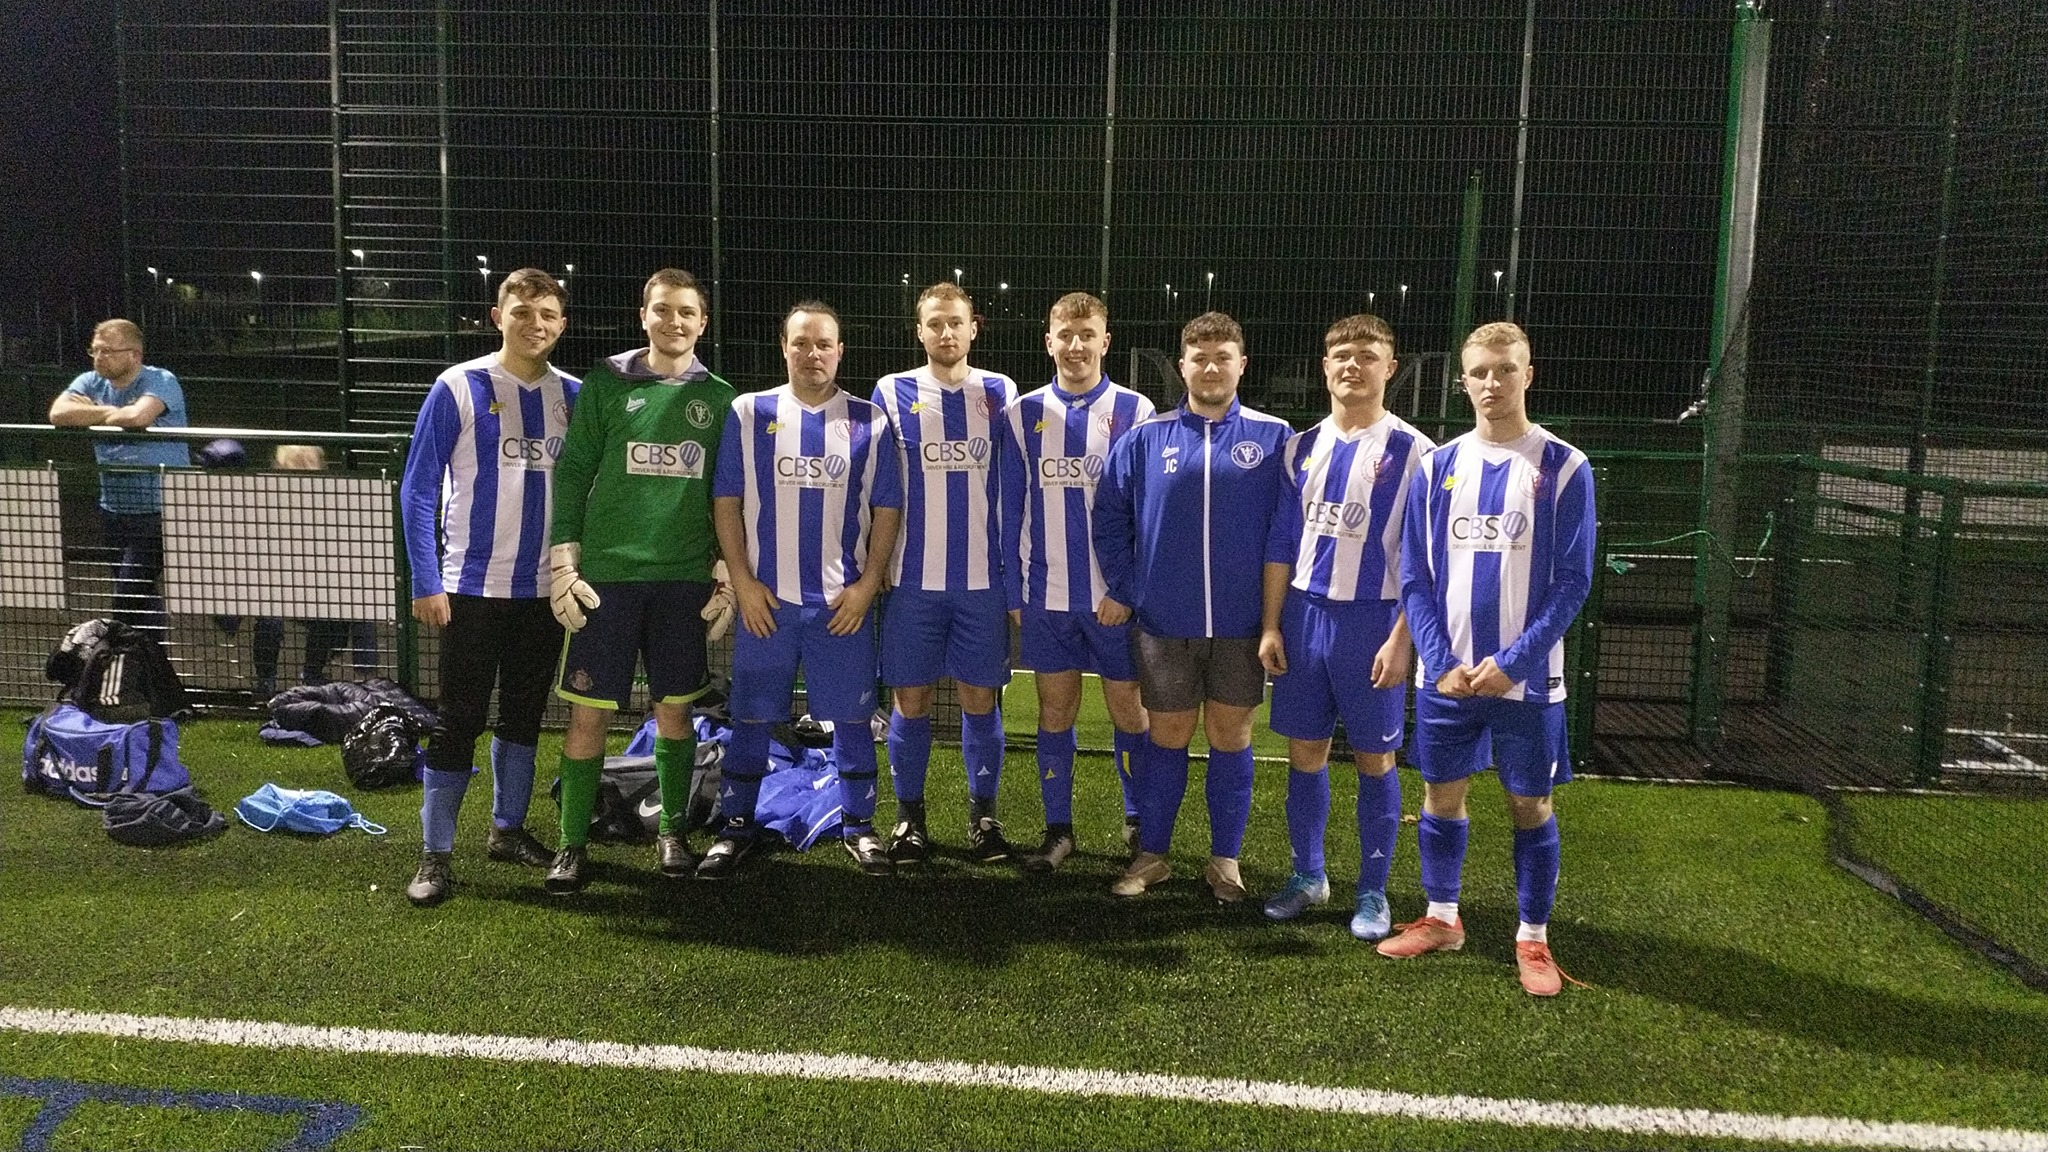 Velocity FC - the youngest team of the night, despite Neil Middlemiss's age.